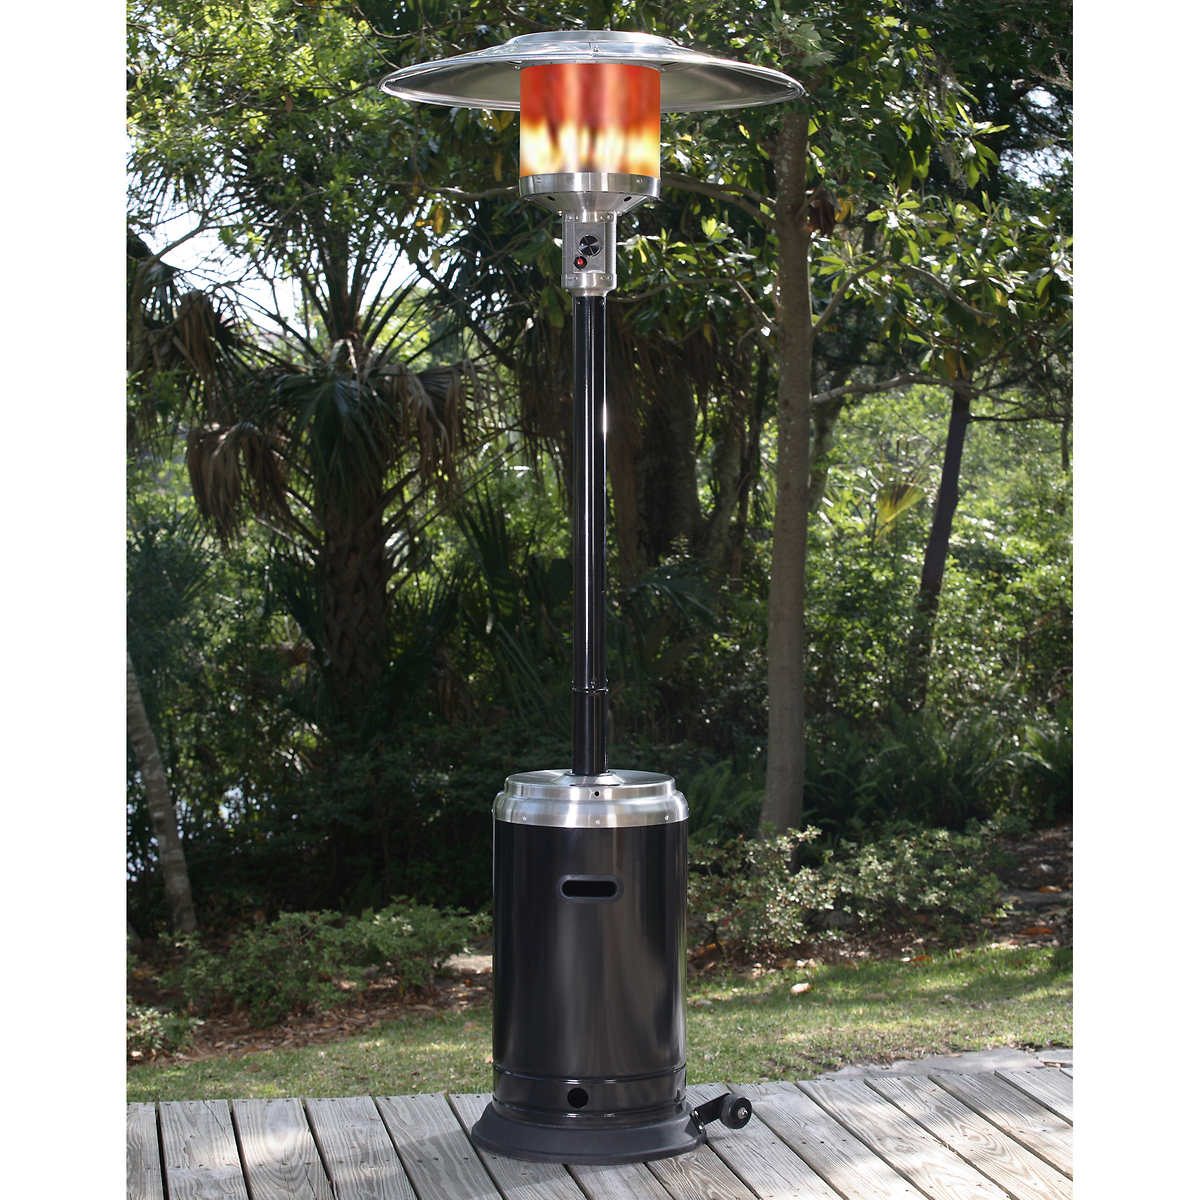 Image result for patio heater